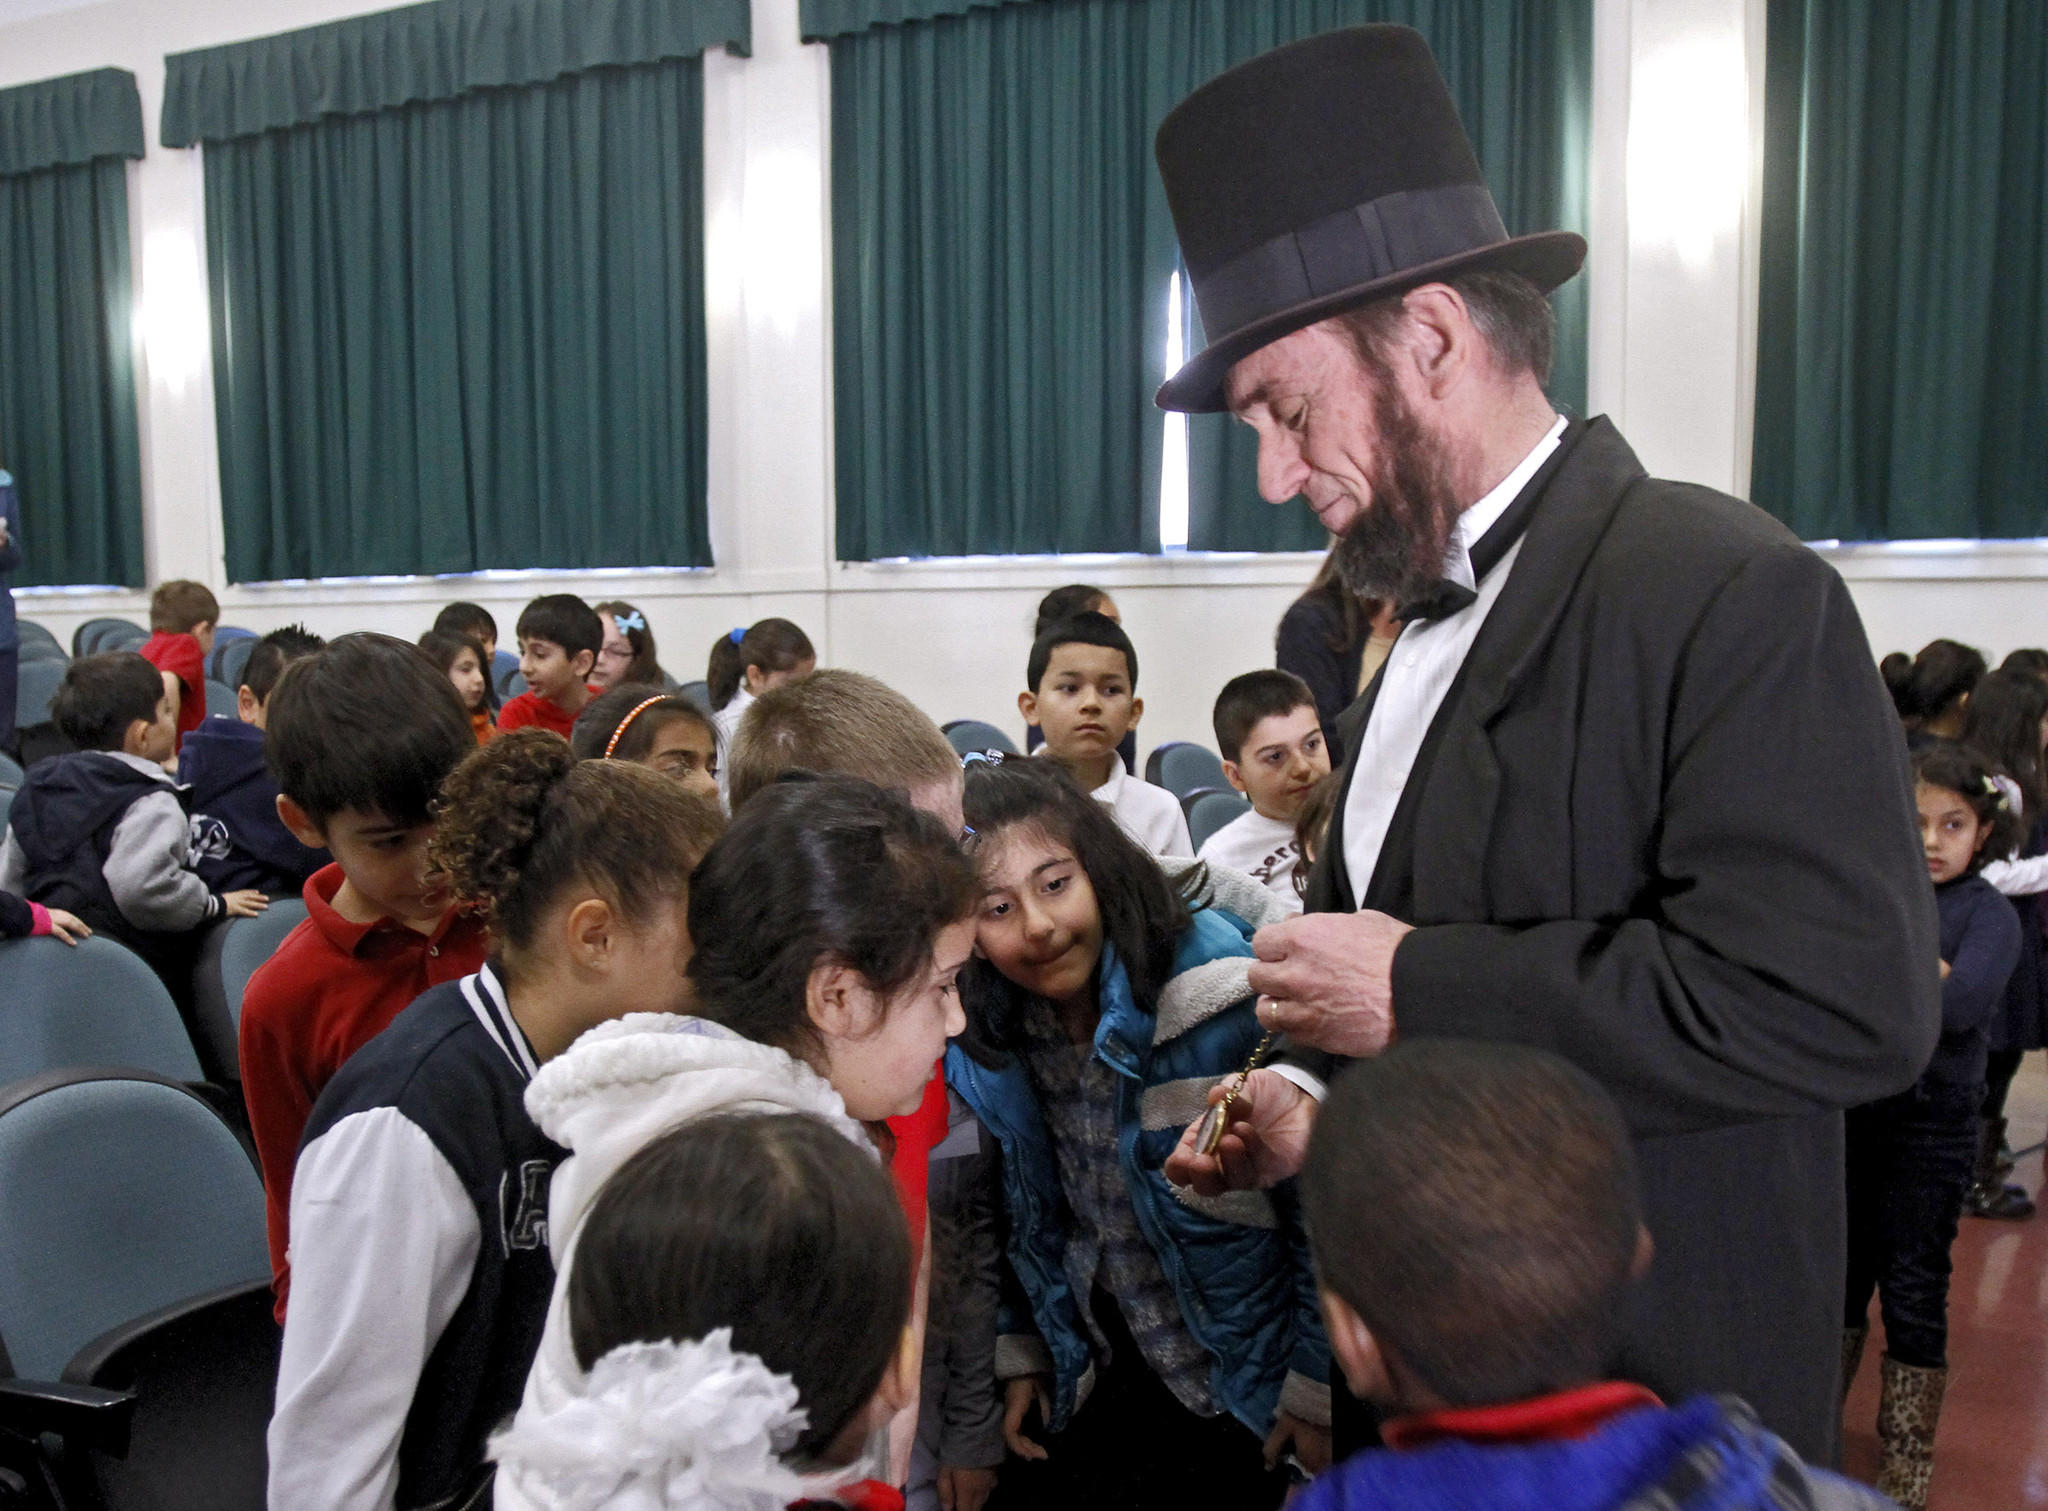 Second graders mingle with actor J.P. Wammack as Abraham Lincoln after he spoke at Marshall Elementary School in Glendale on Wednesday, Feb. 5, 2014. Wammack, as the 16th president, gave a 30-minute talk about the history of the president known as Honest Abe.